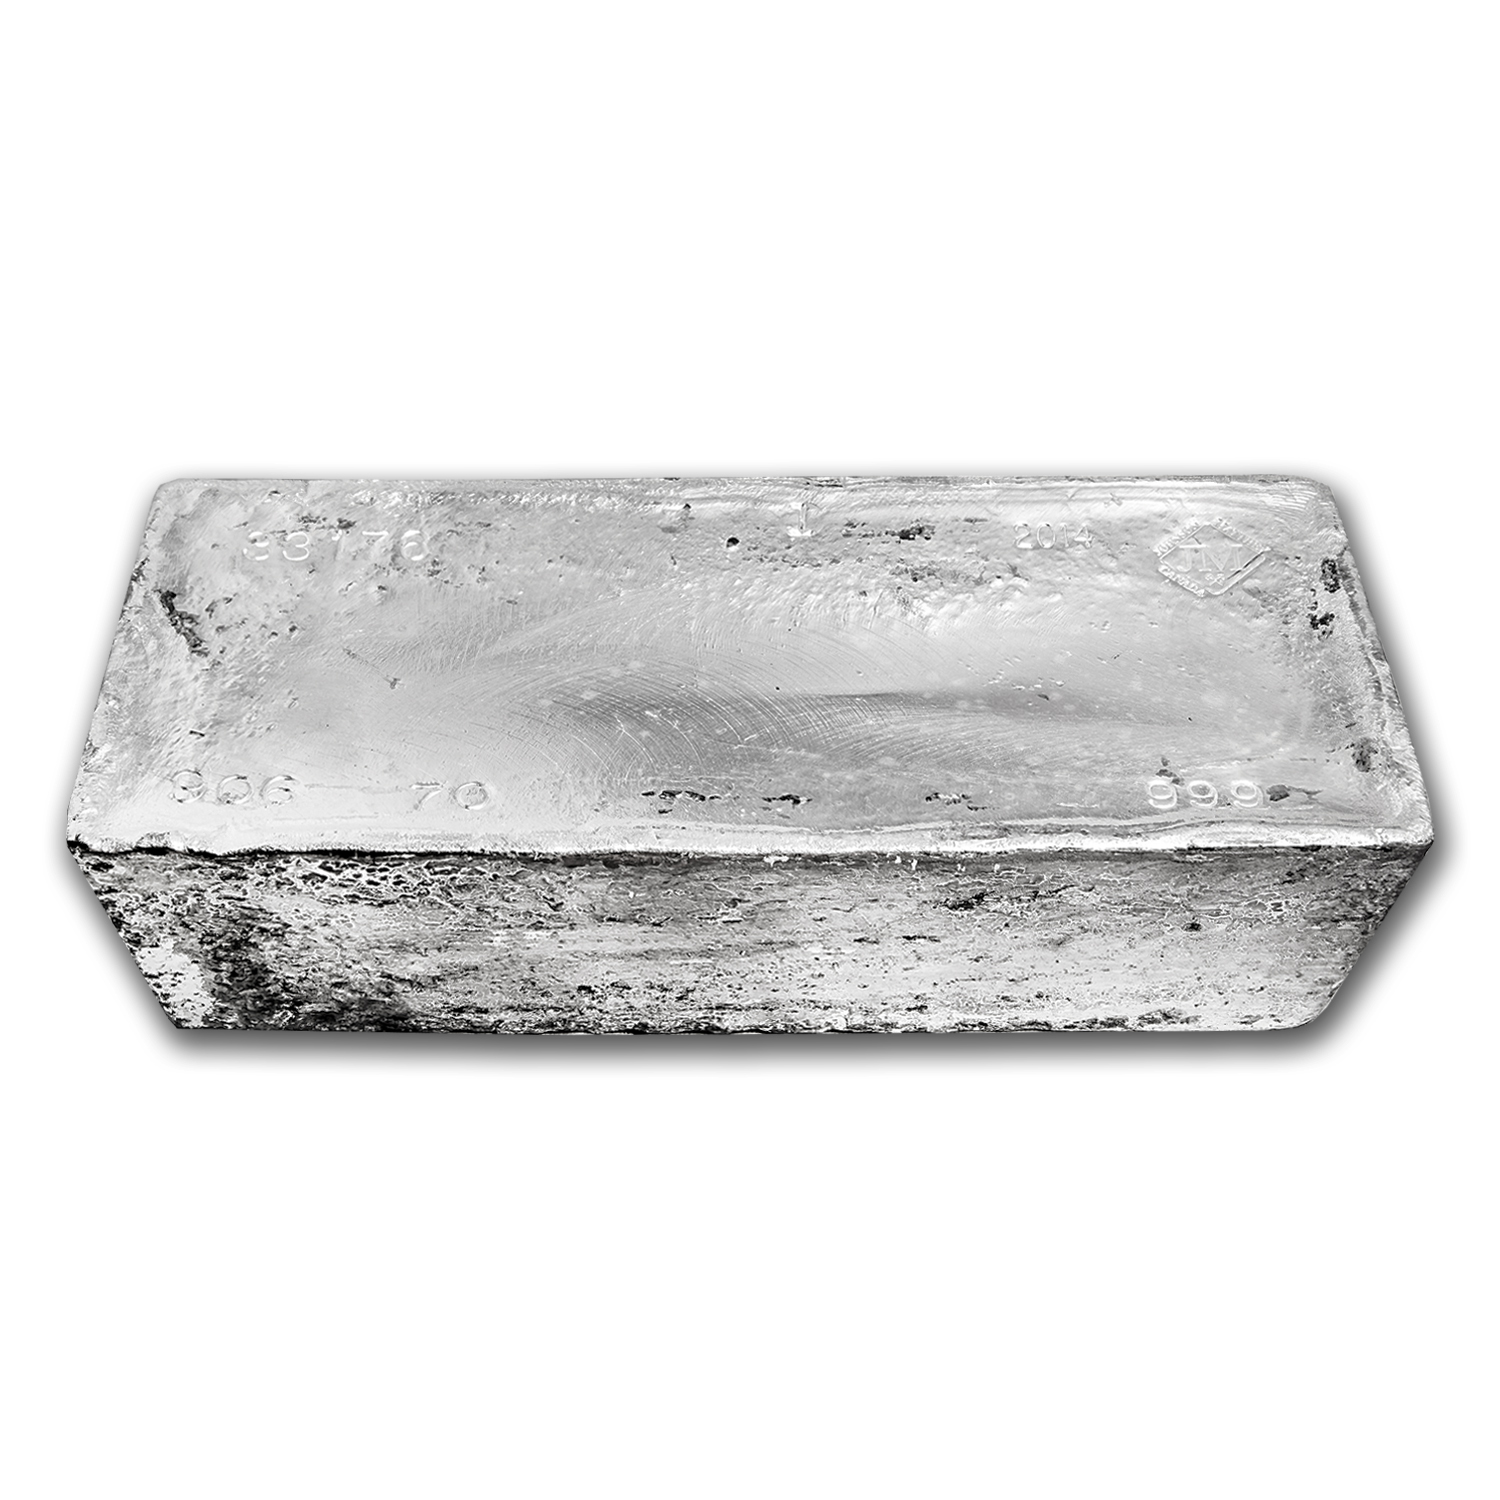 1000.00 oz Silver Bar - Johnson Matthey